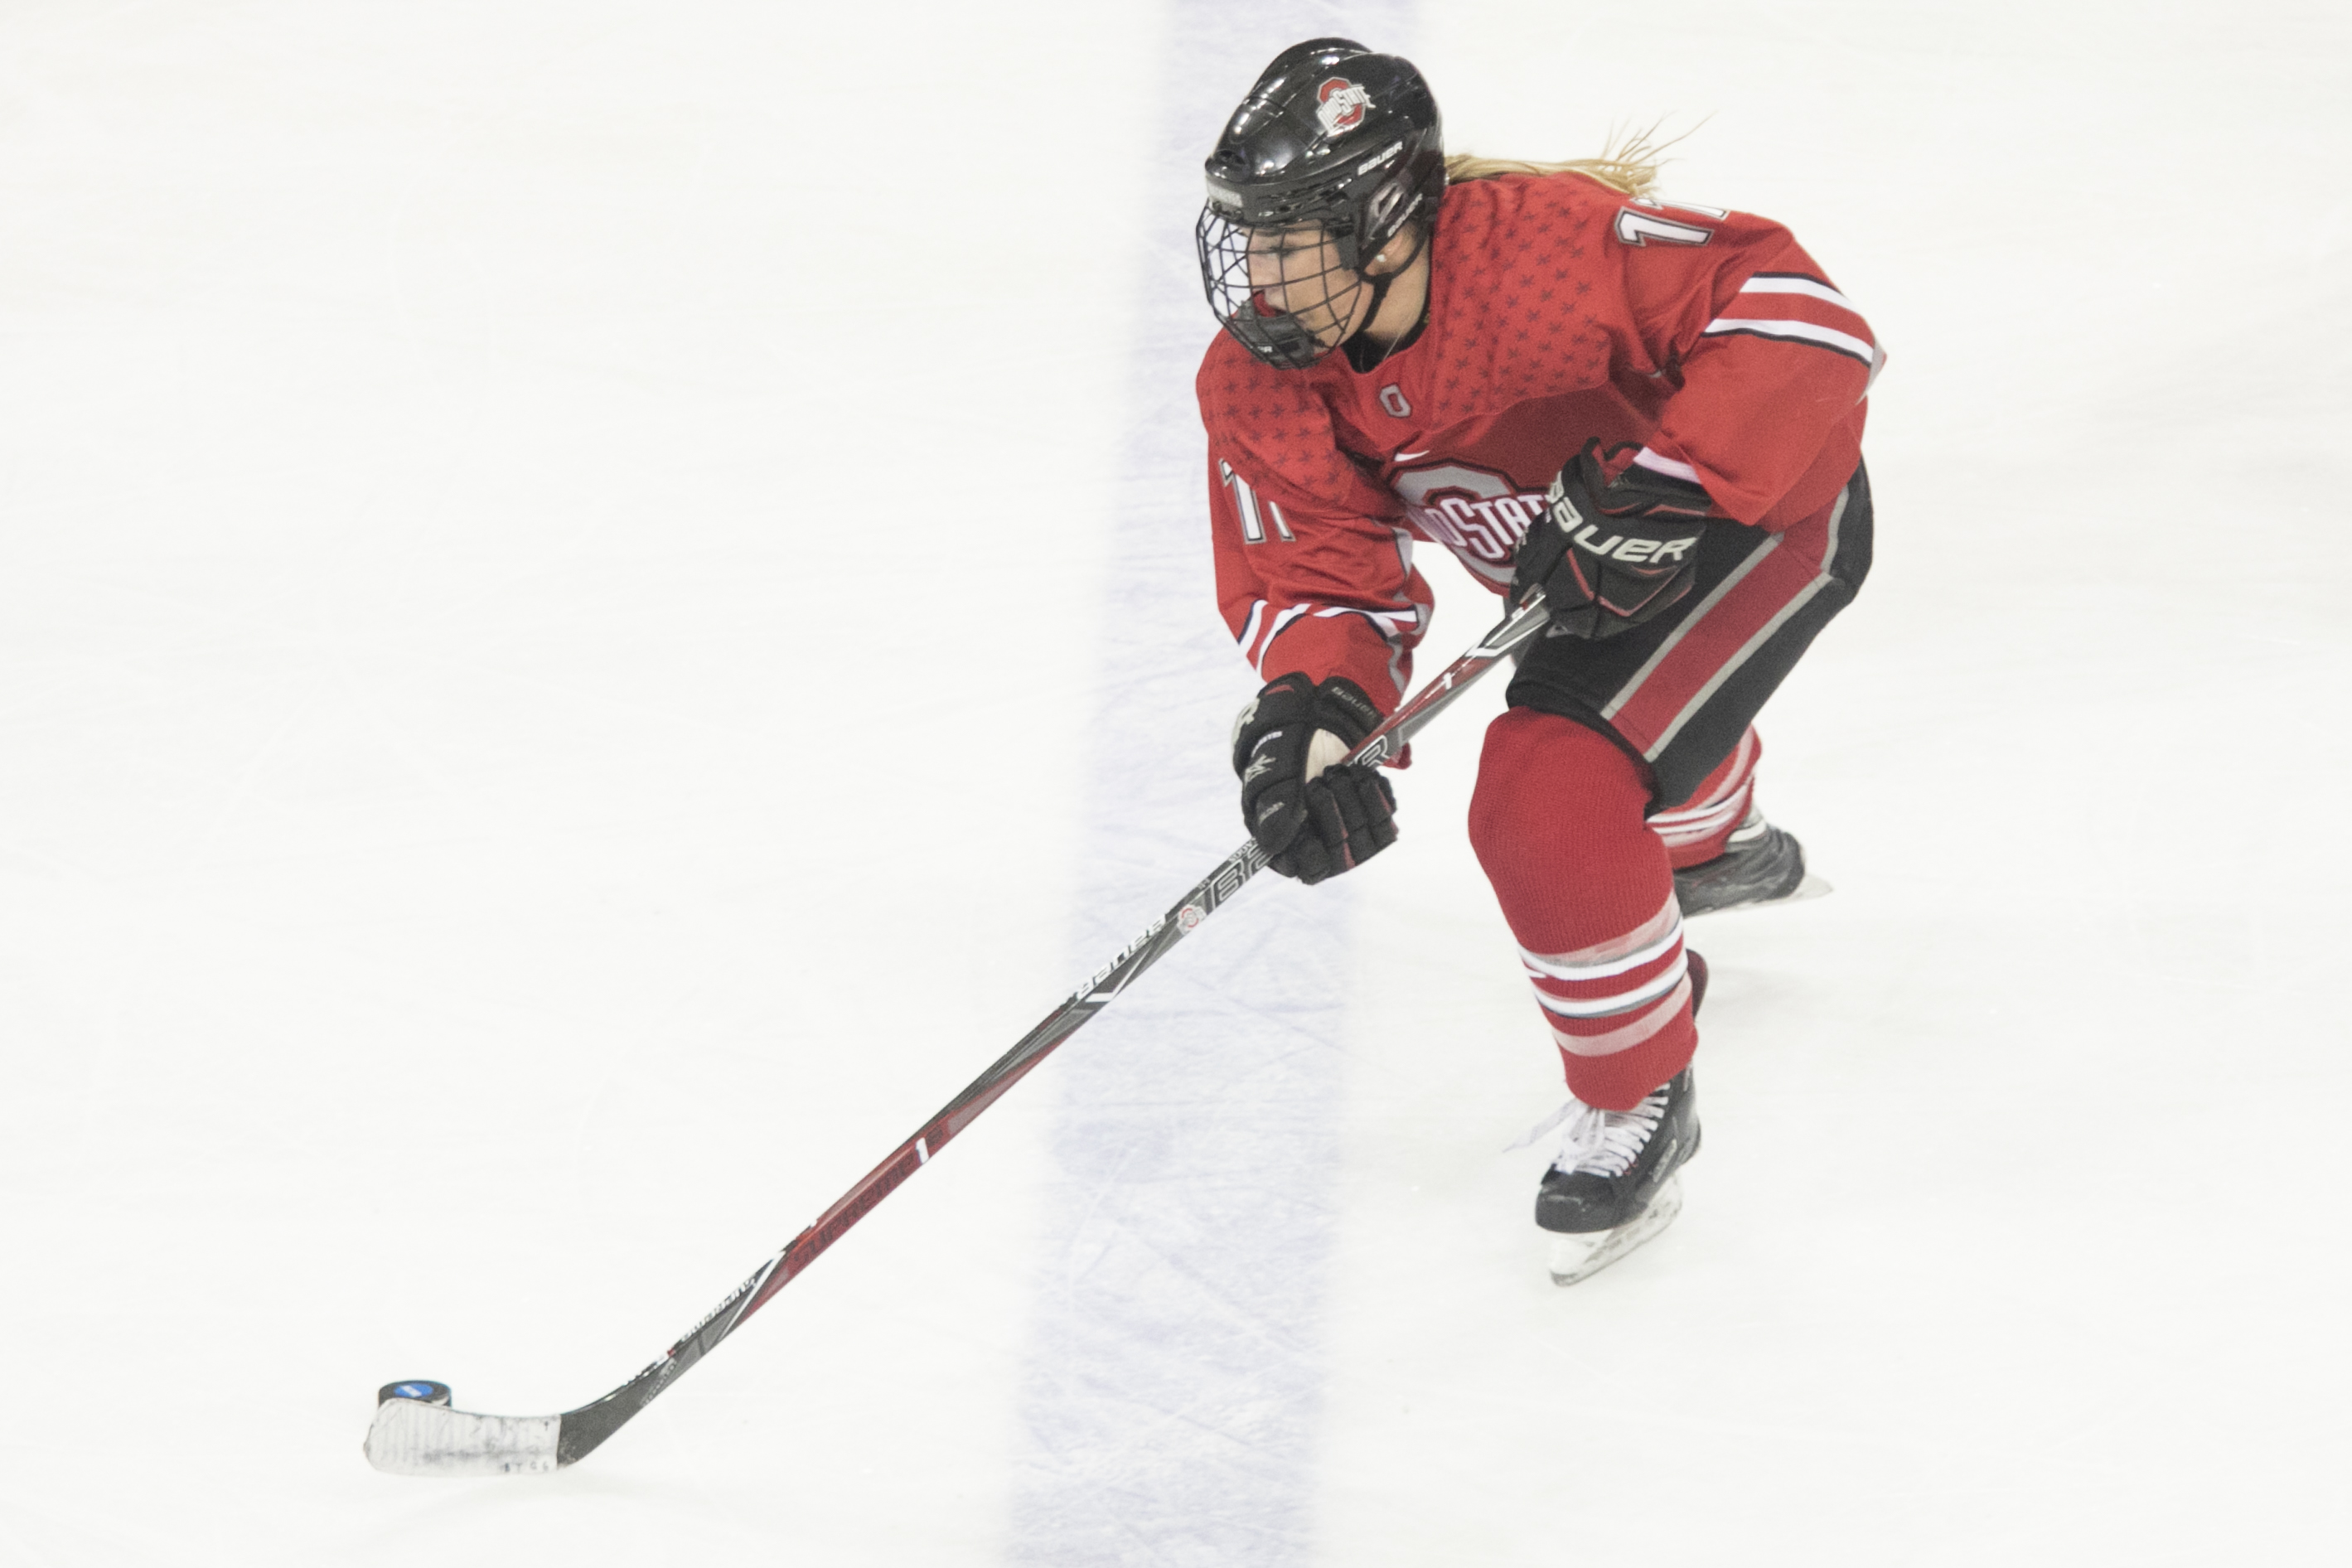 Ohio State University Forward Tatum Skaggs during a NCAA regional game in Chestnut Hill, MA on March 10, 2018. (Photo by Michelle Jay)